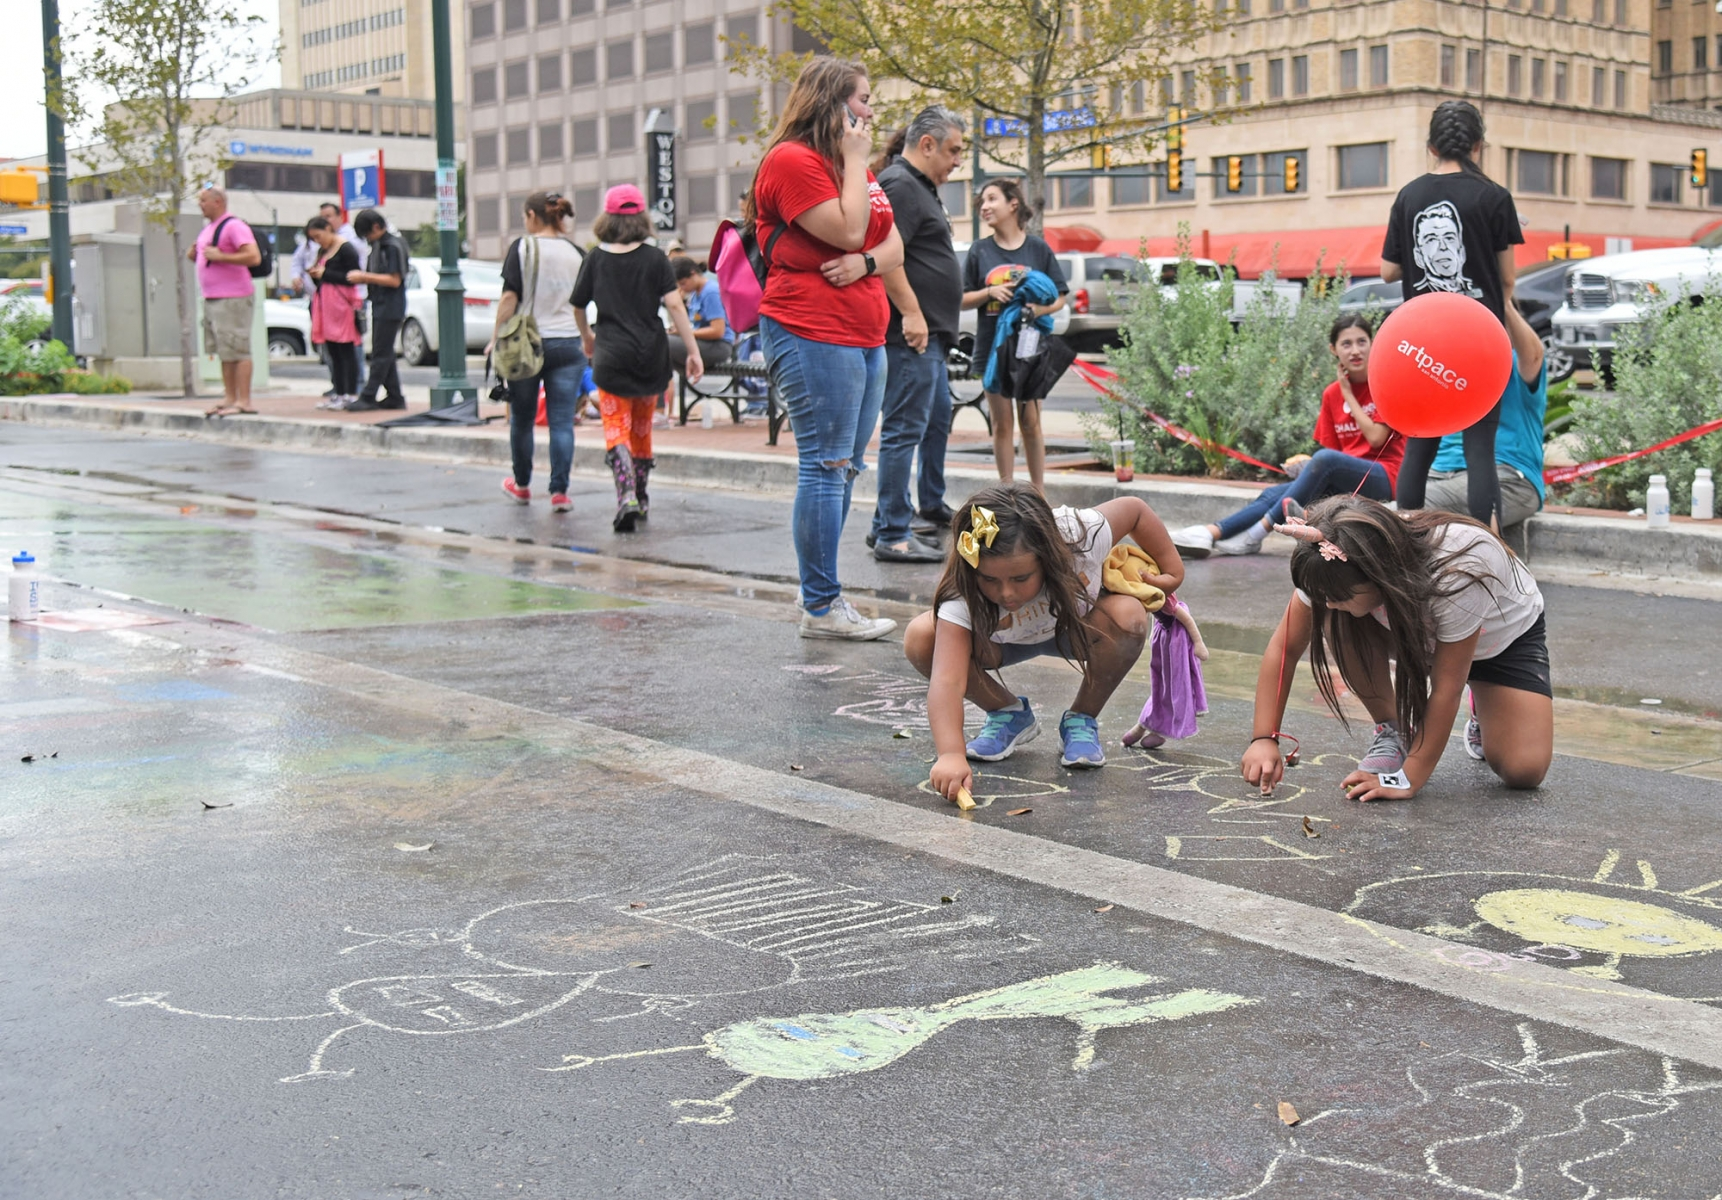 Emily Gonzalez and Jaylinn Urdiales draw with chalk after a brief rain during the 15th annual Chalk It Up in downtown San Antonio.  <em><b>Photo by V. Finster | Heron</b></em>